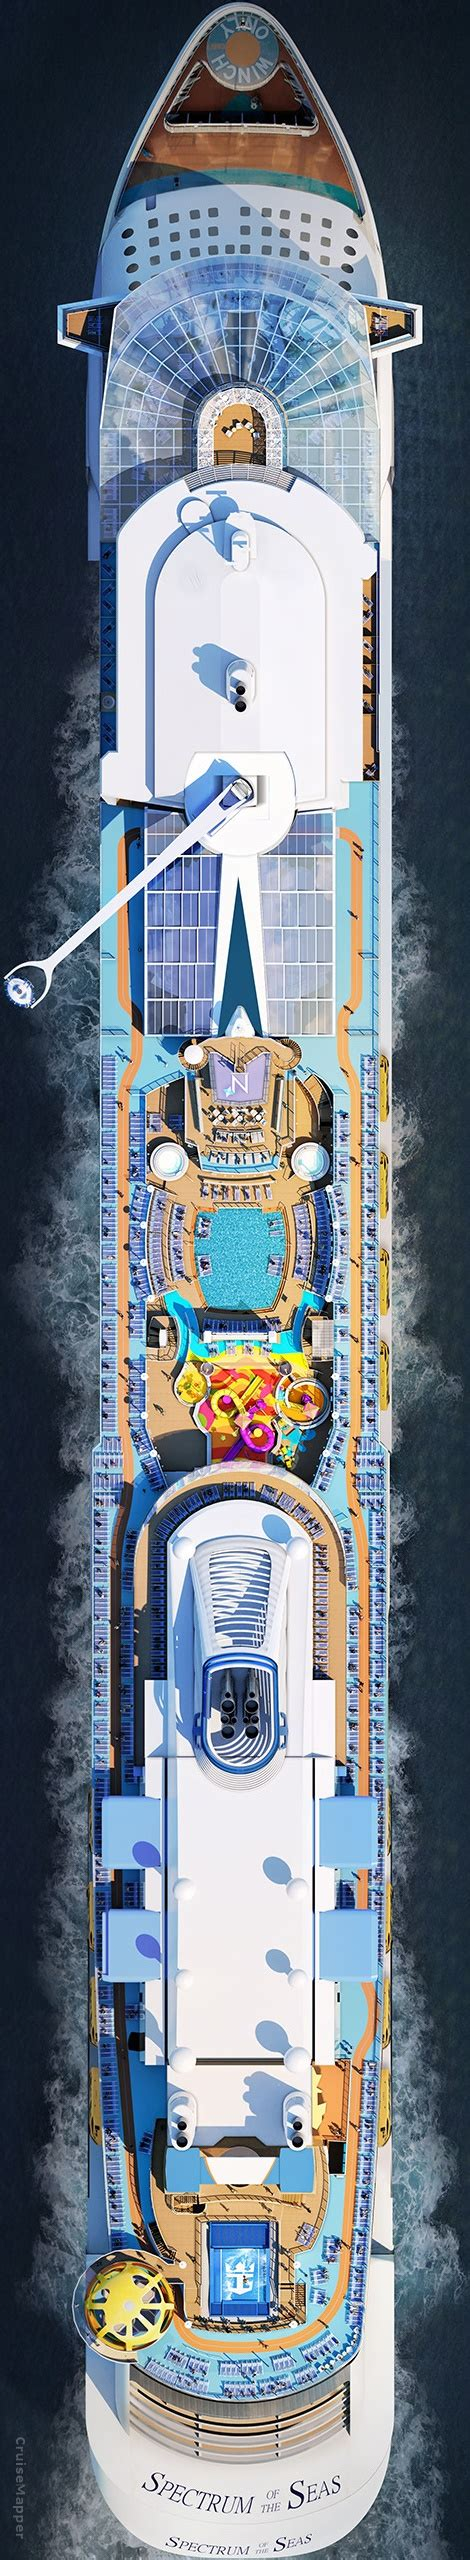 Spectrum Of The Seas - Itinerary Schedule, Current